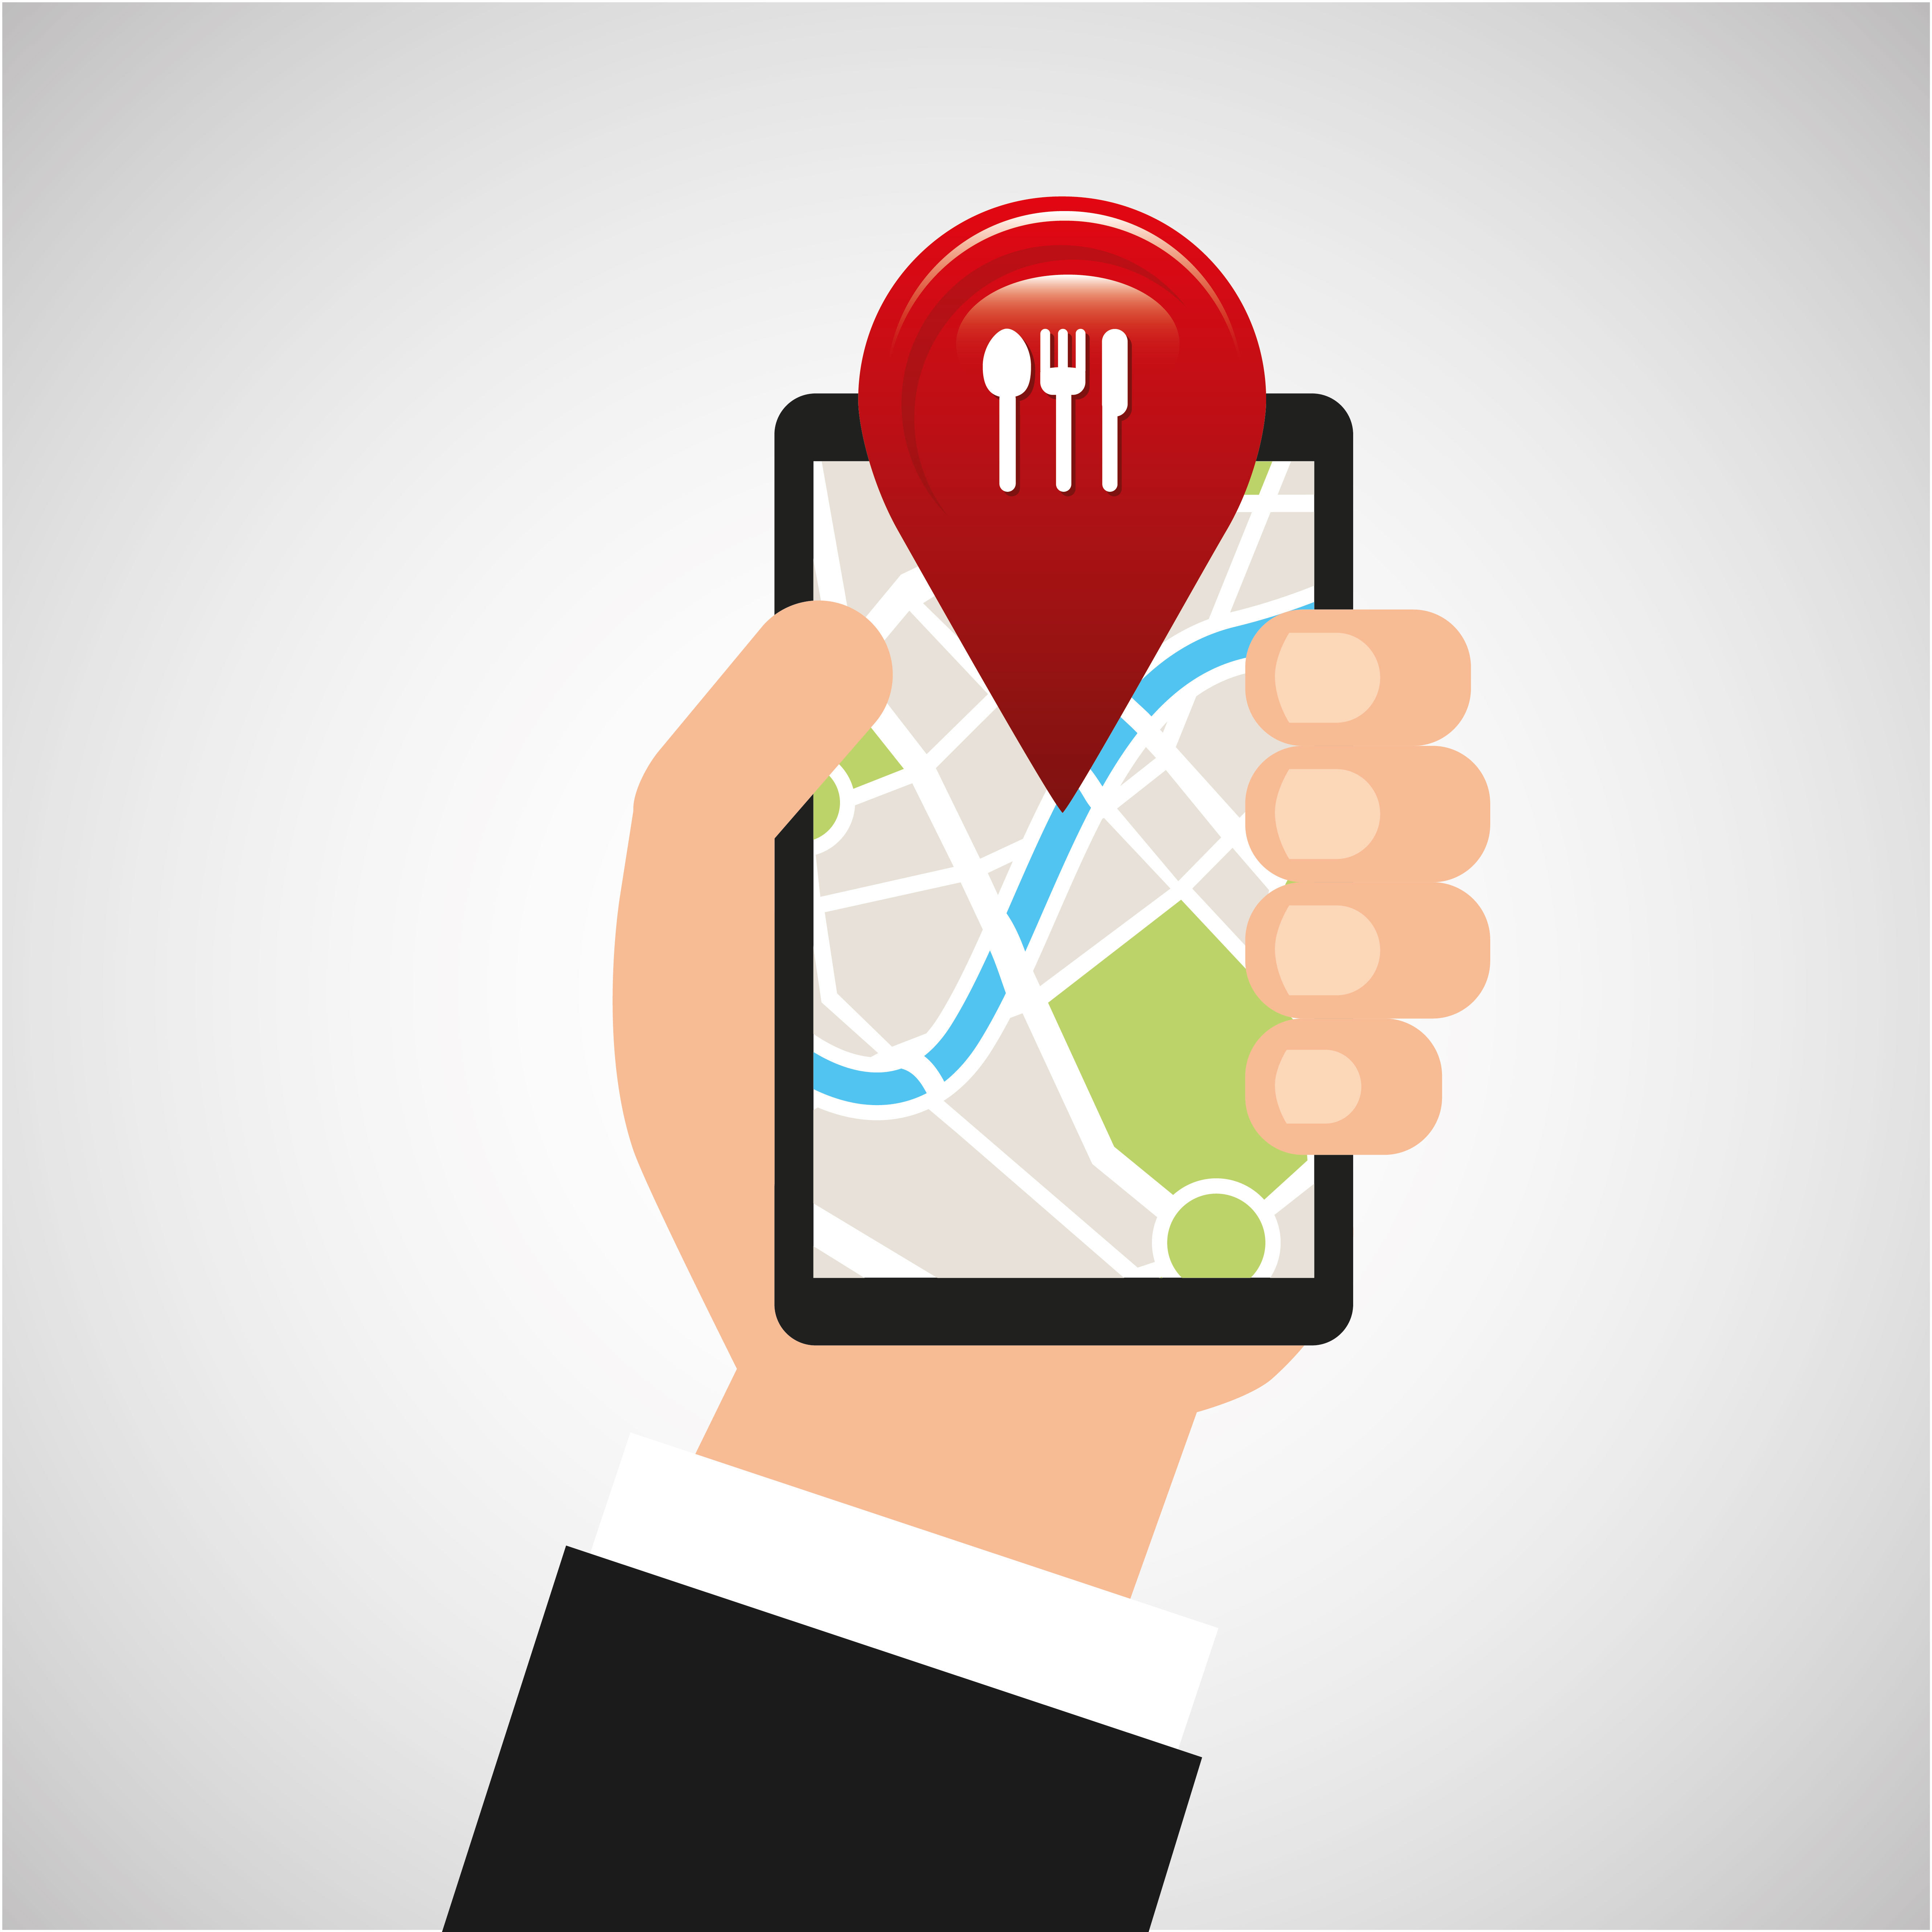 How to Build a Restaurant App